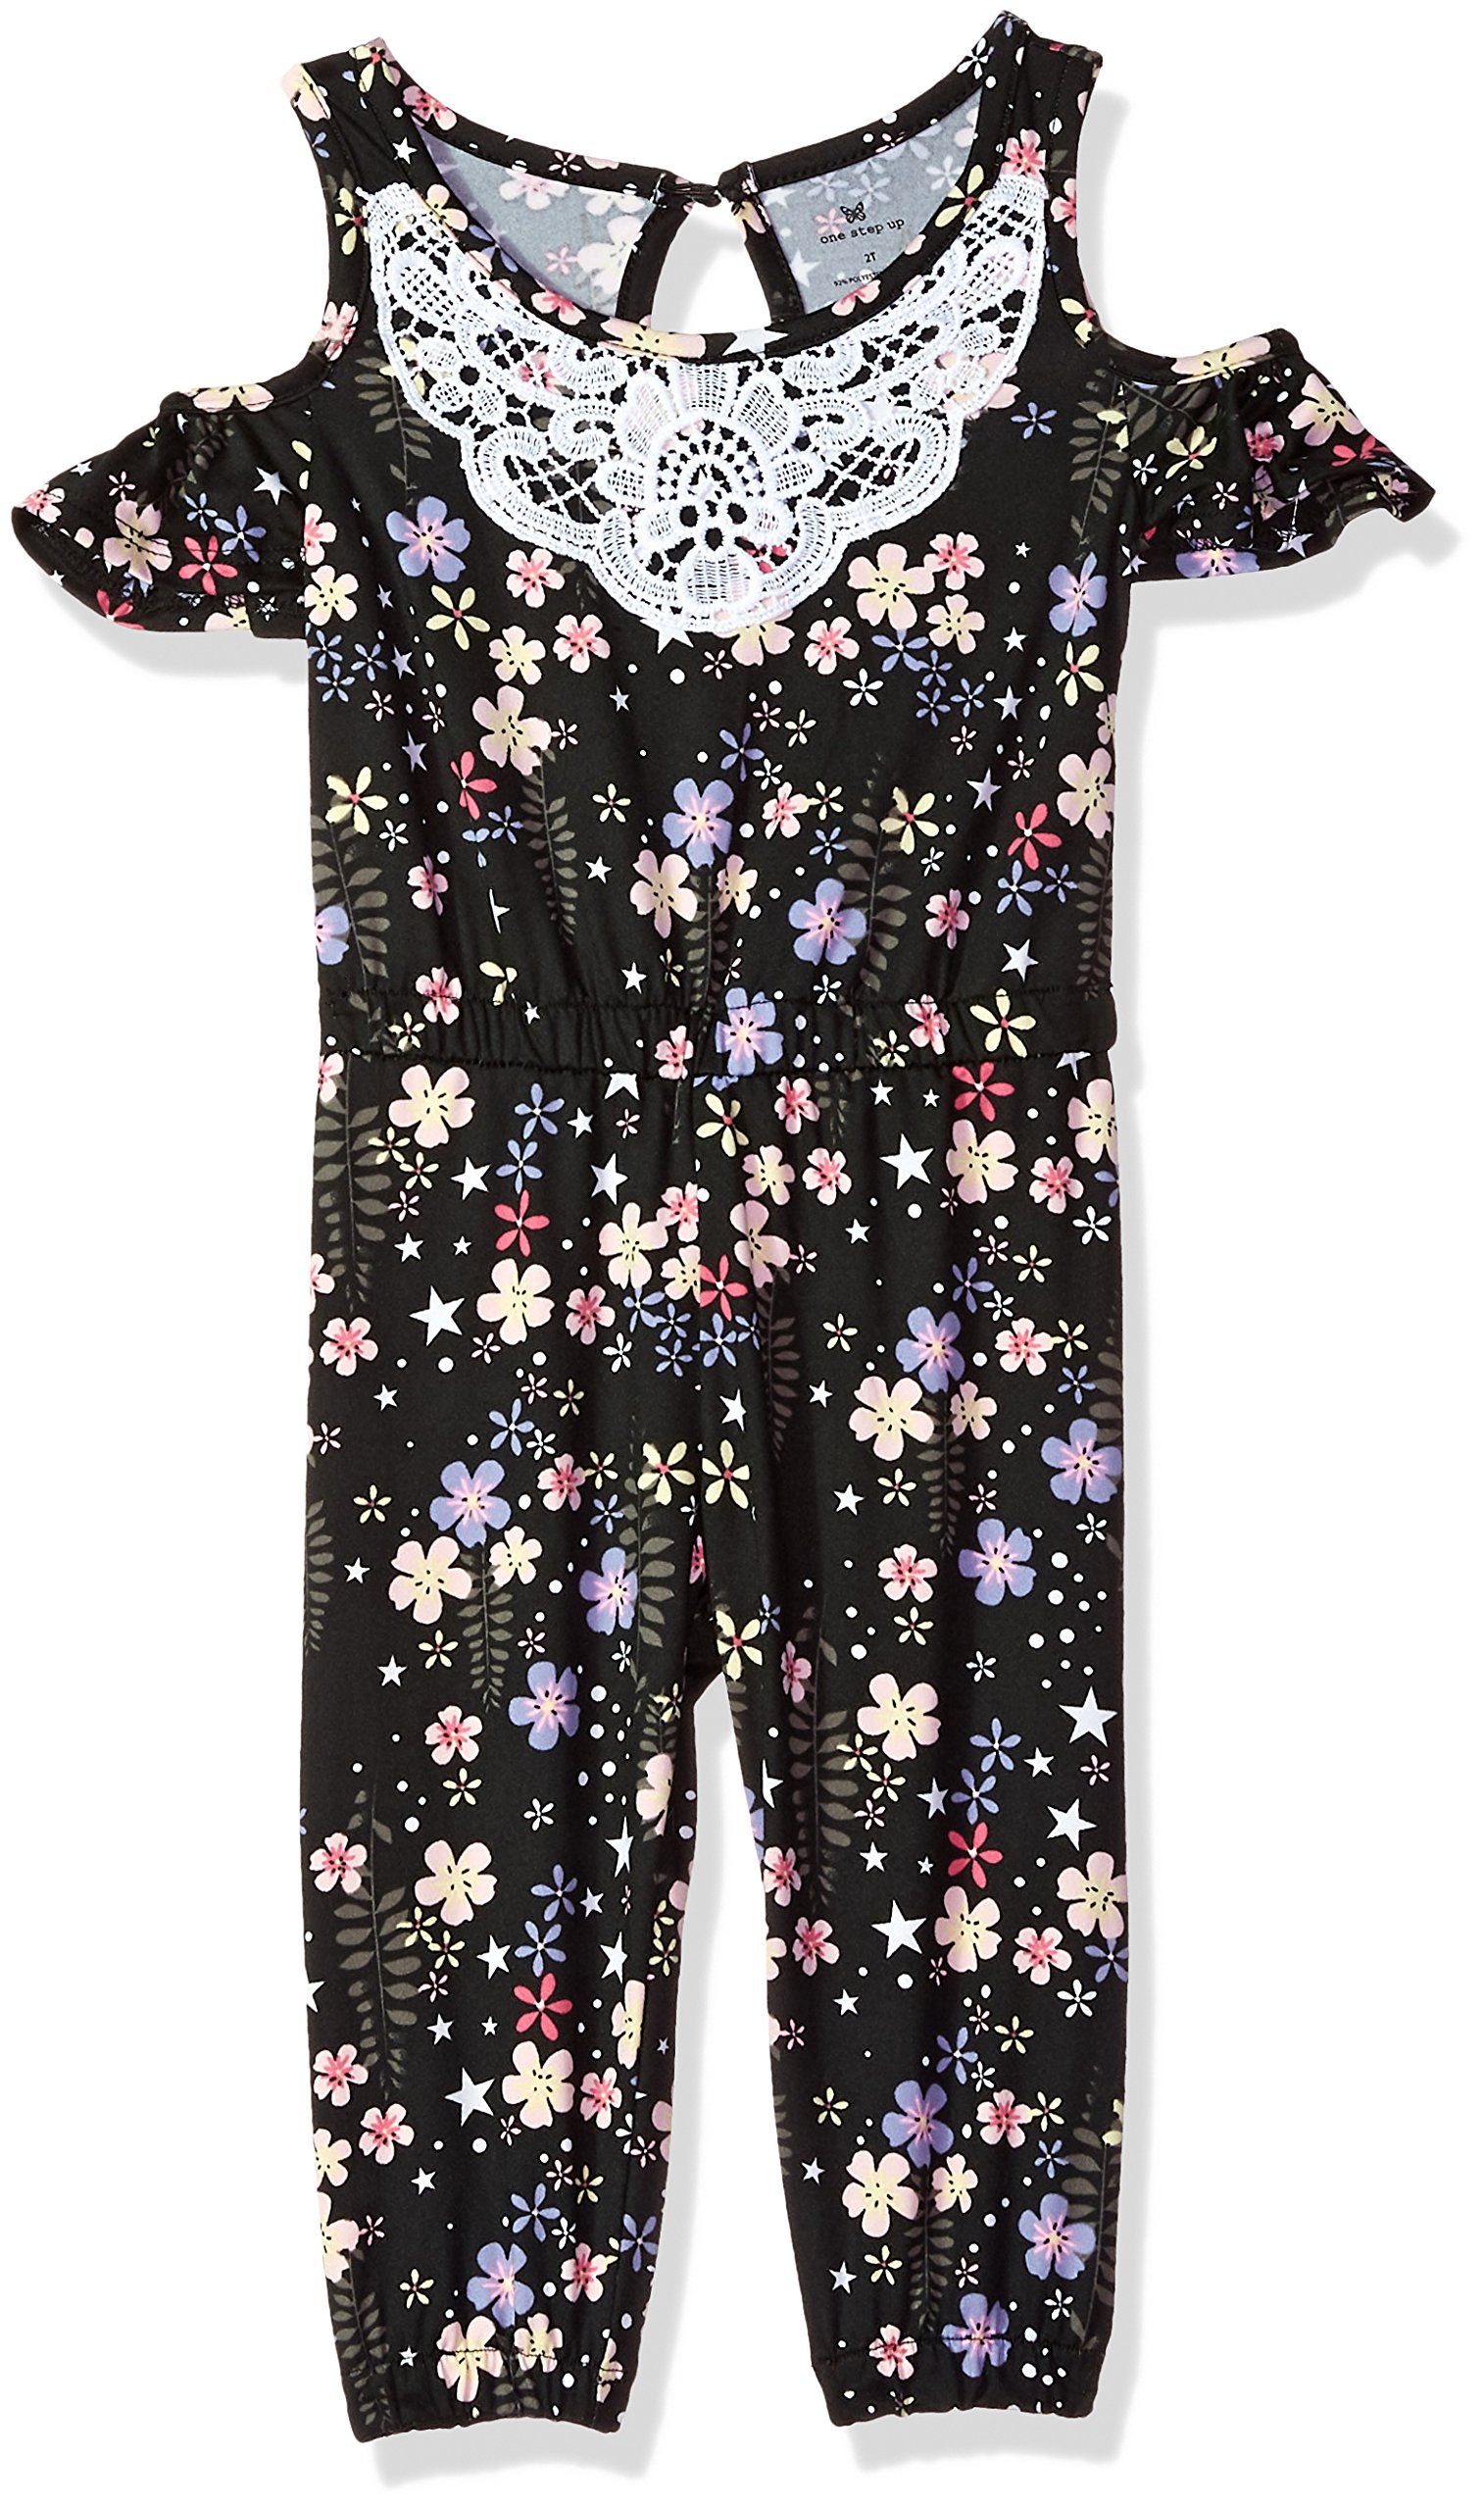 One Step Up Toddler Girls' Knit Jumpsuit, Black Floral, 3T